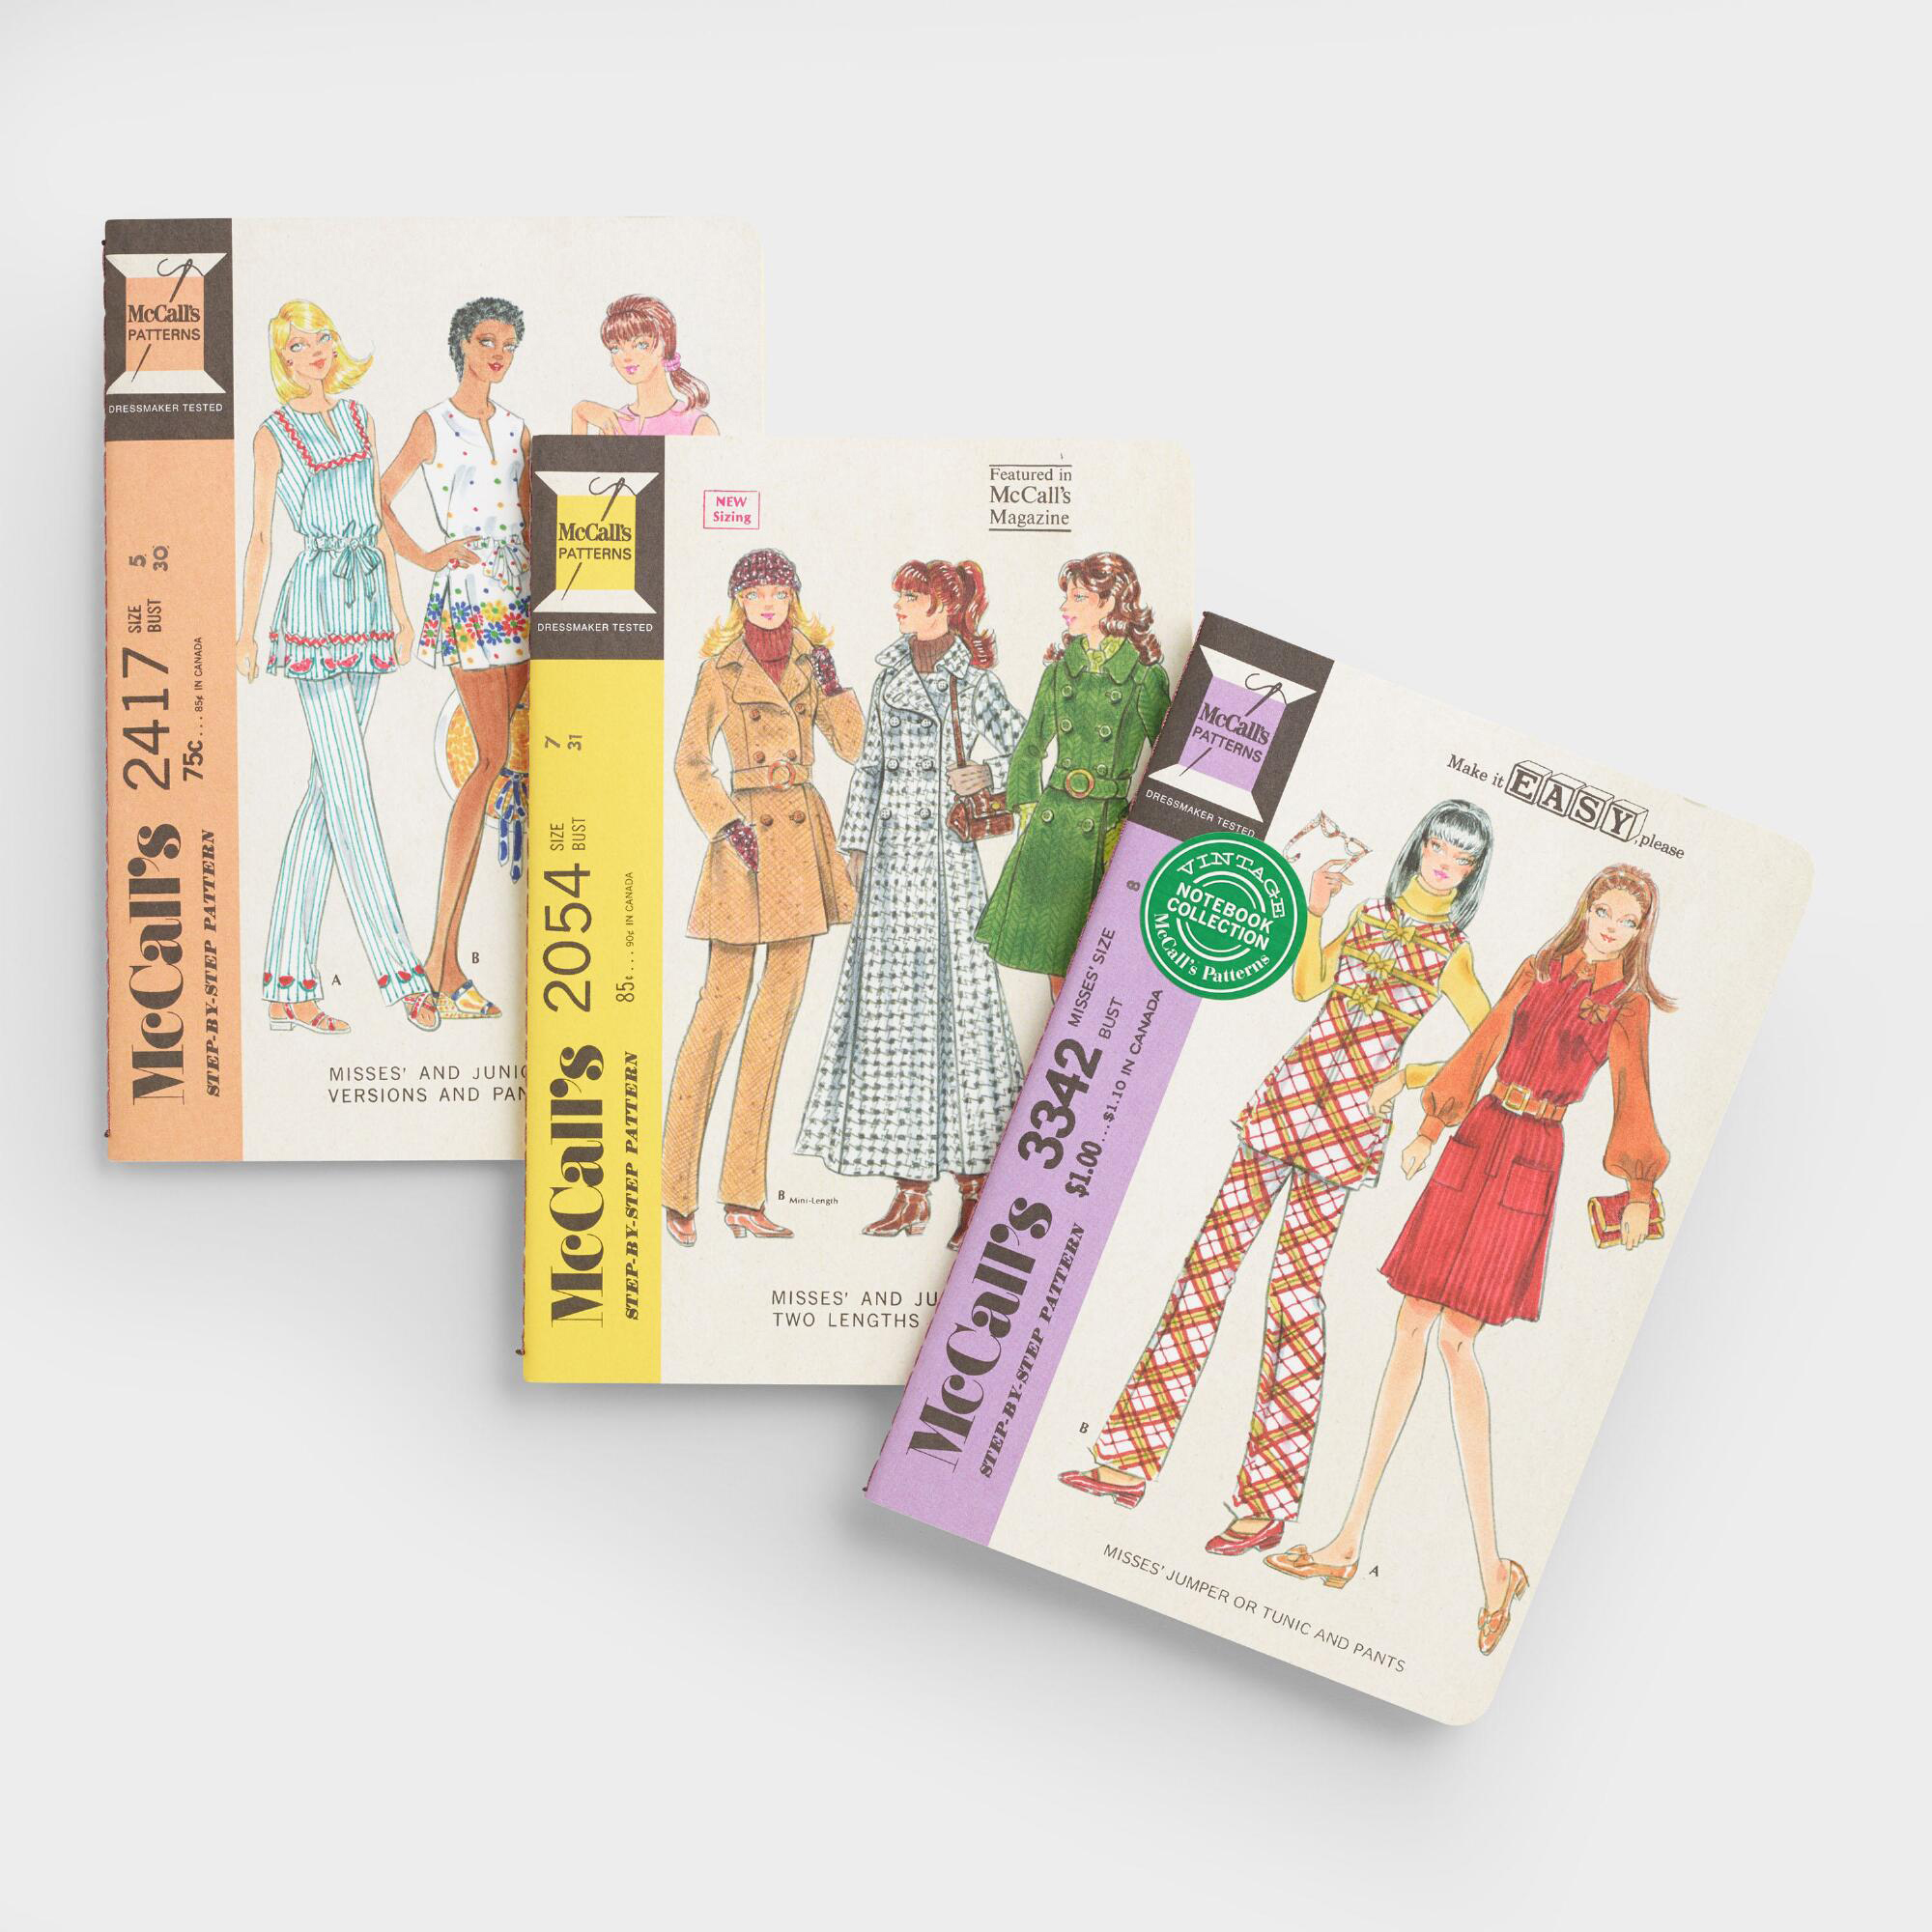 Vintage McCall's Patterns Notebooks